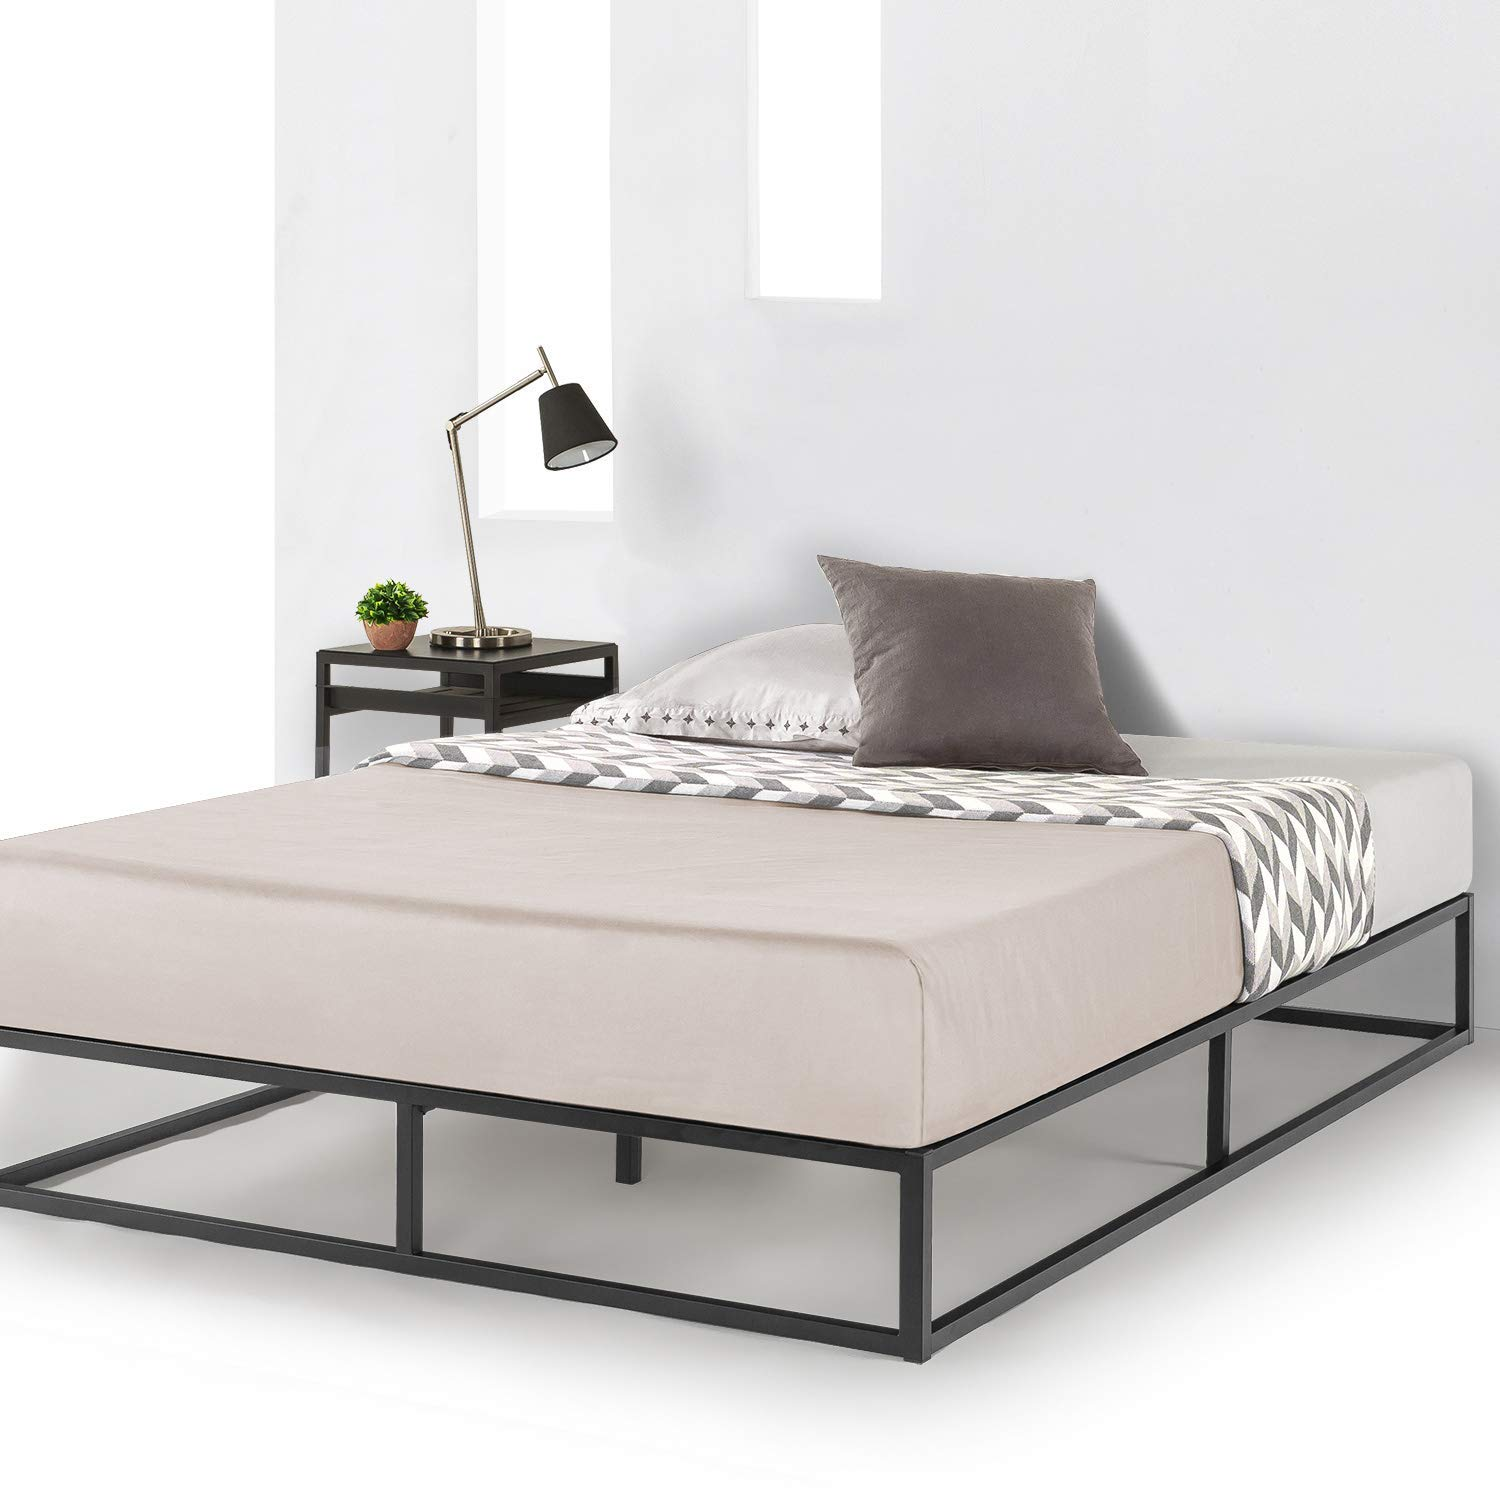 new product 25f71 582db Cheap King Bed Frame Price, find King Bed Frame Price deals ...